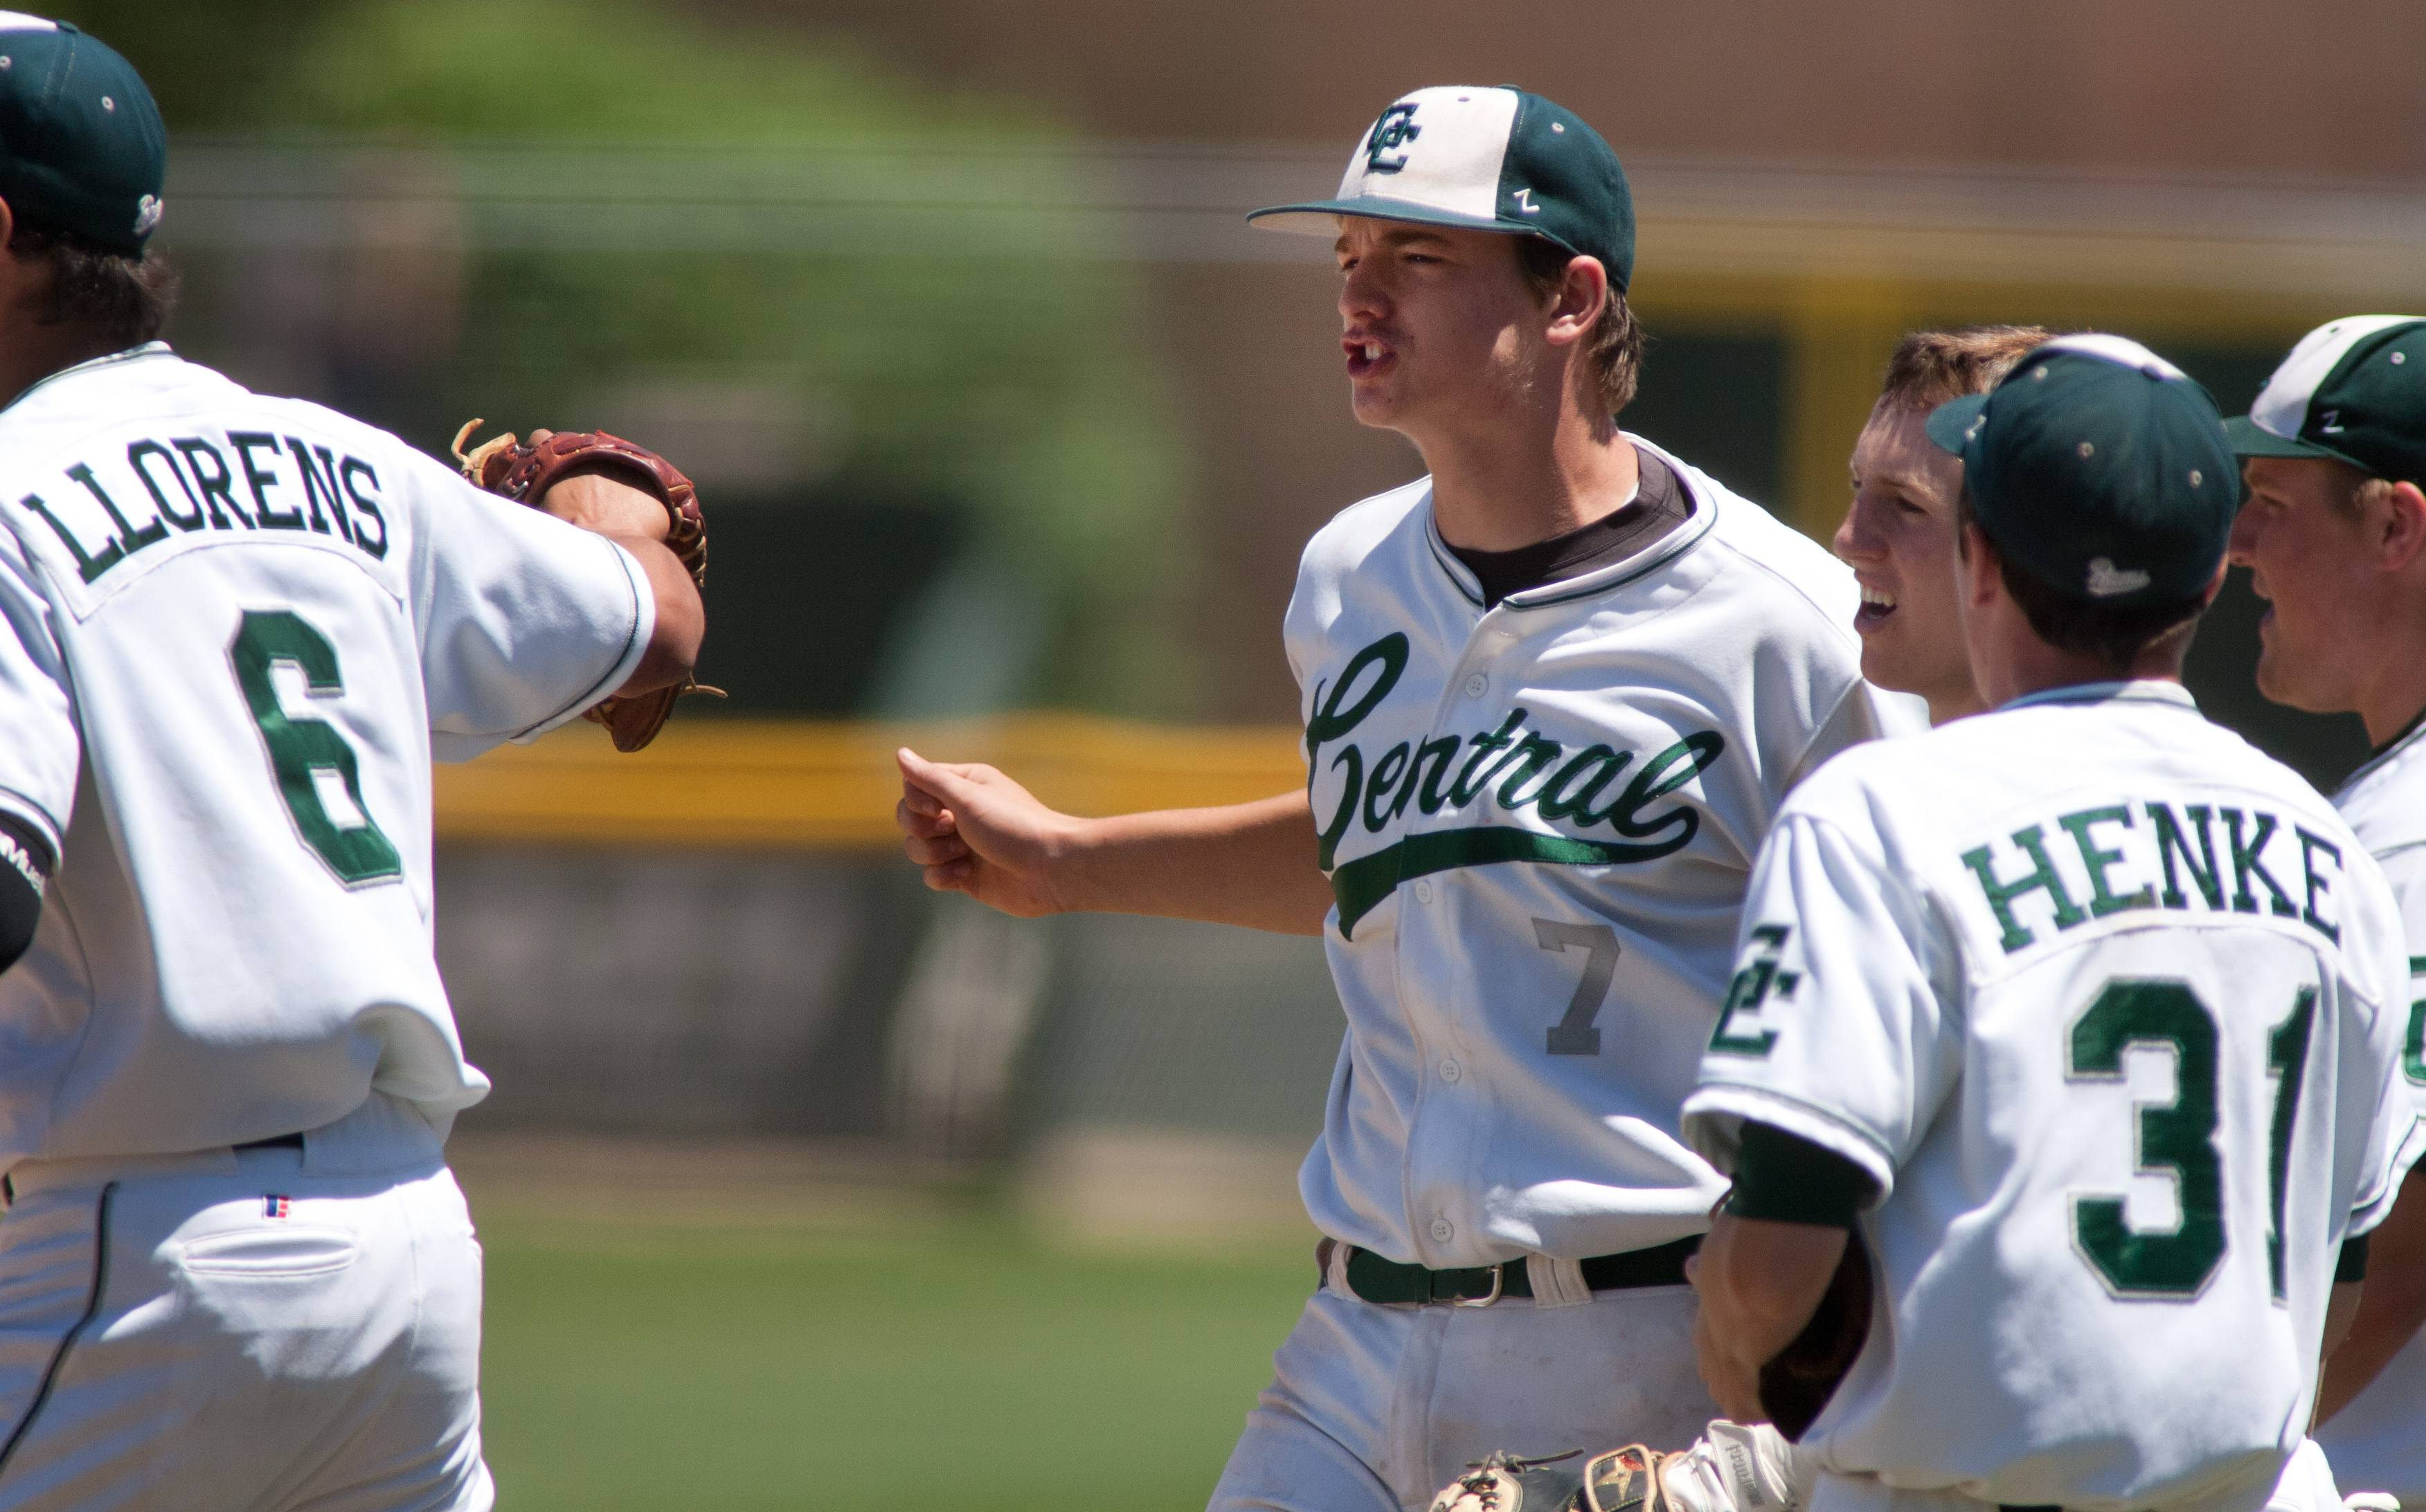 Grayslake Central's Kyle Clark, center, celebrates getting out of the second inning against Springfield Sacred Heart-Griffin, during Class 3A state baseball semifinals at Silver Cross Field in Joliet.